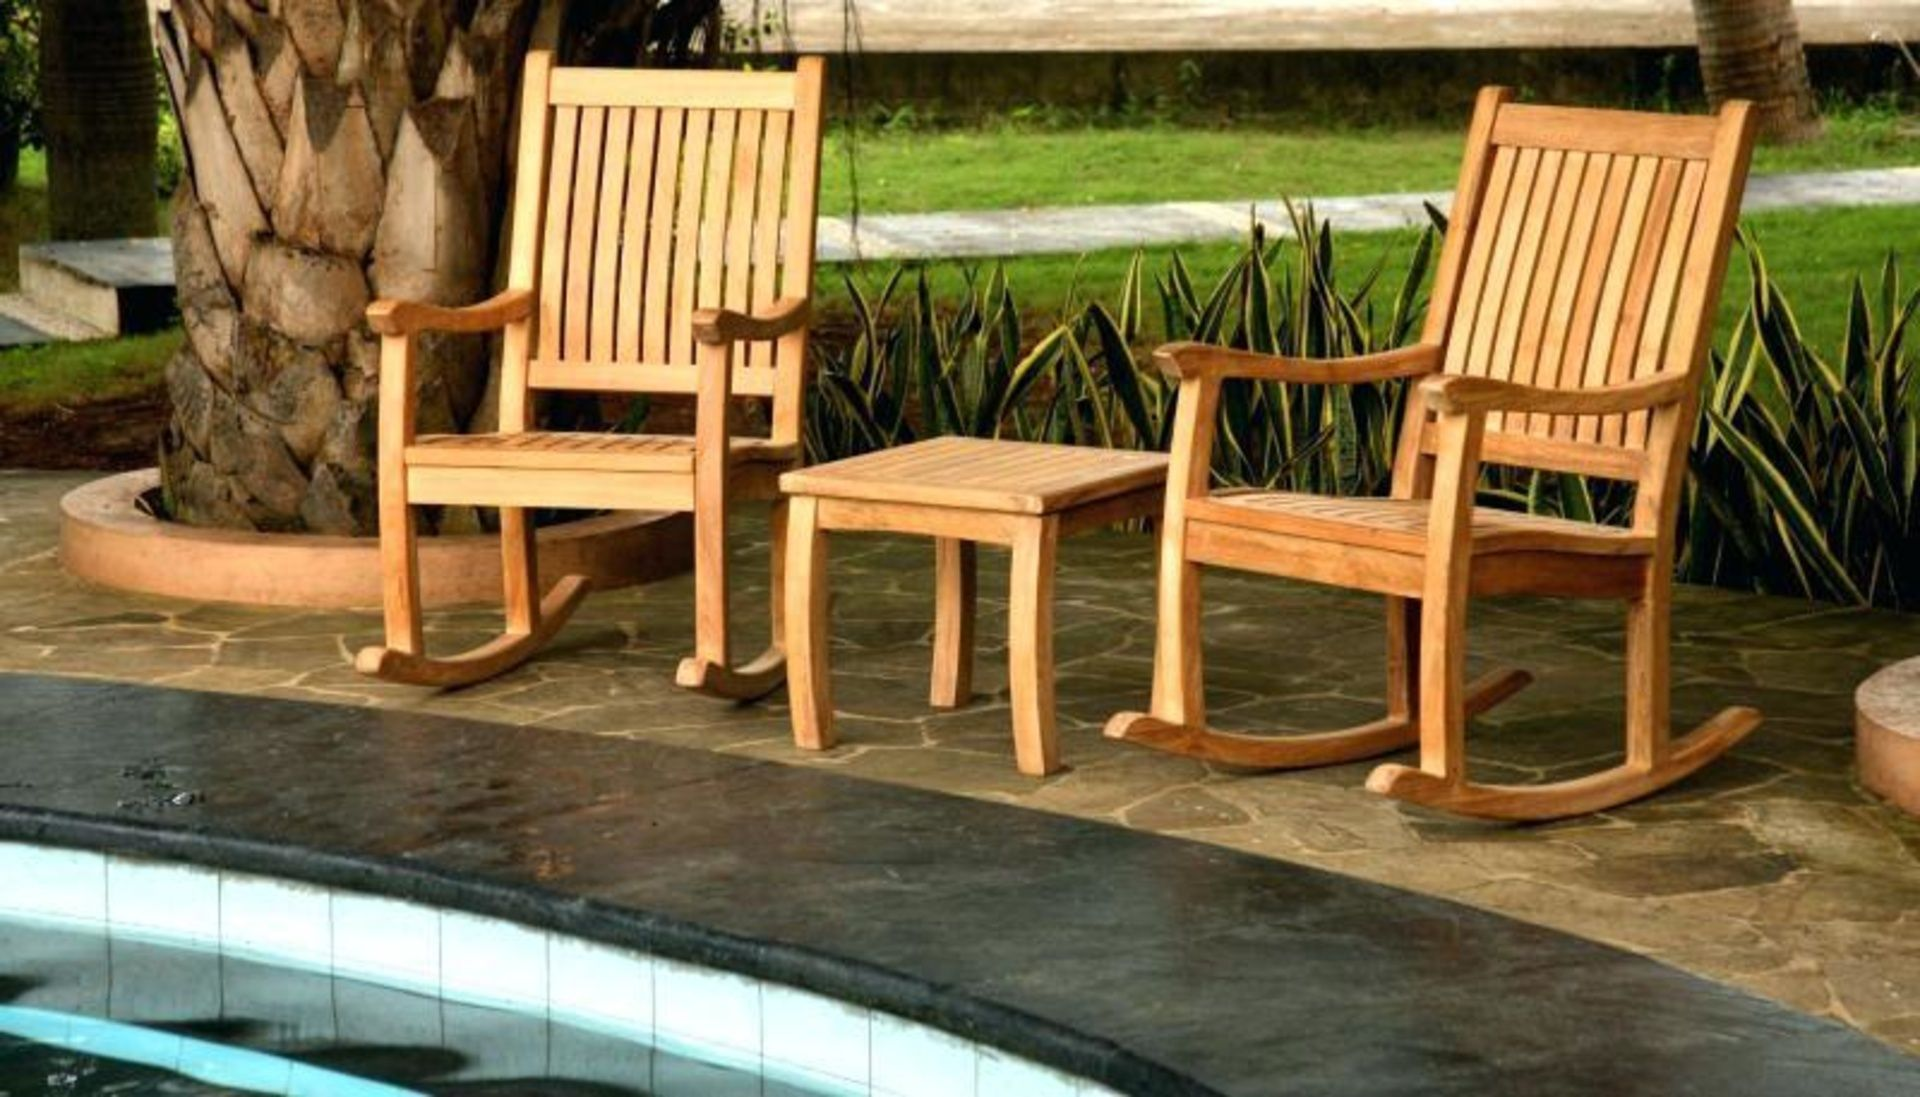 6 reasons why you should buy teak patio furniture 1 easy to